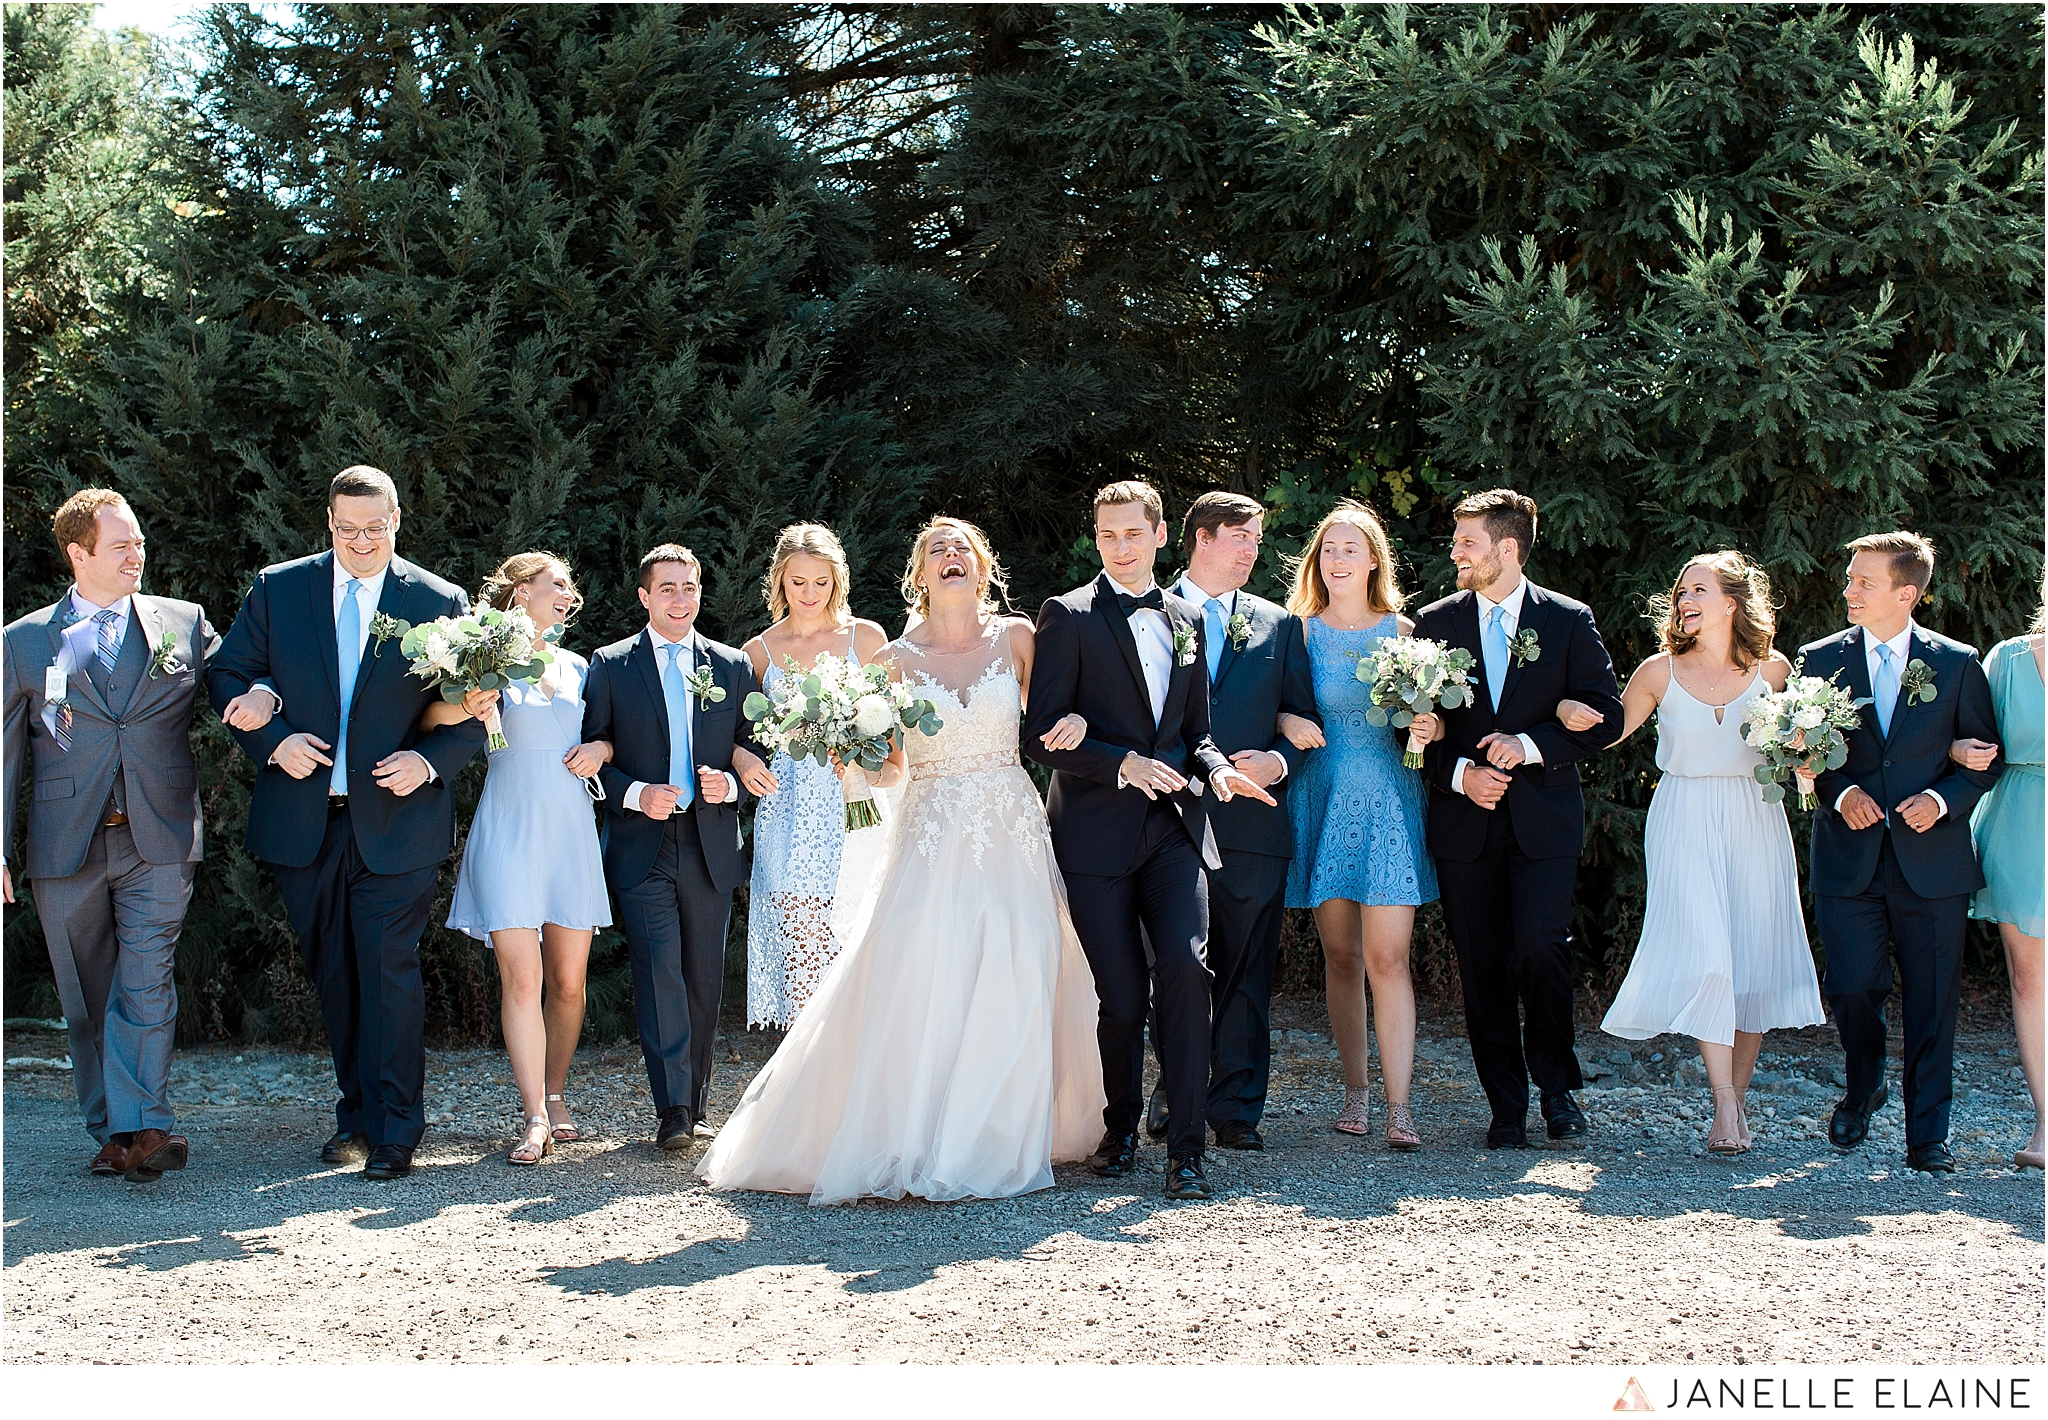 janelle elaine photography-carleton farms-washington-wedding-lake stevens-135.jpg